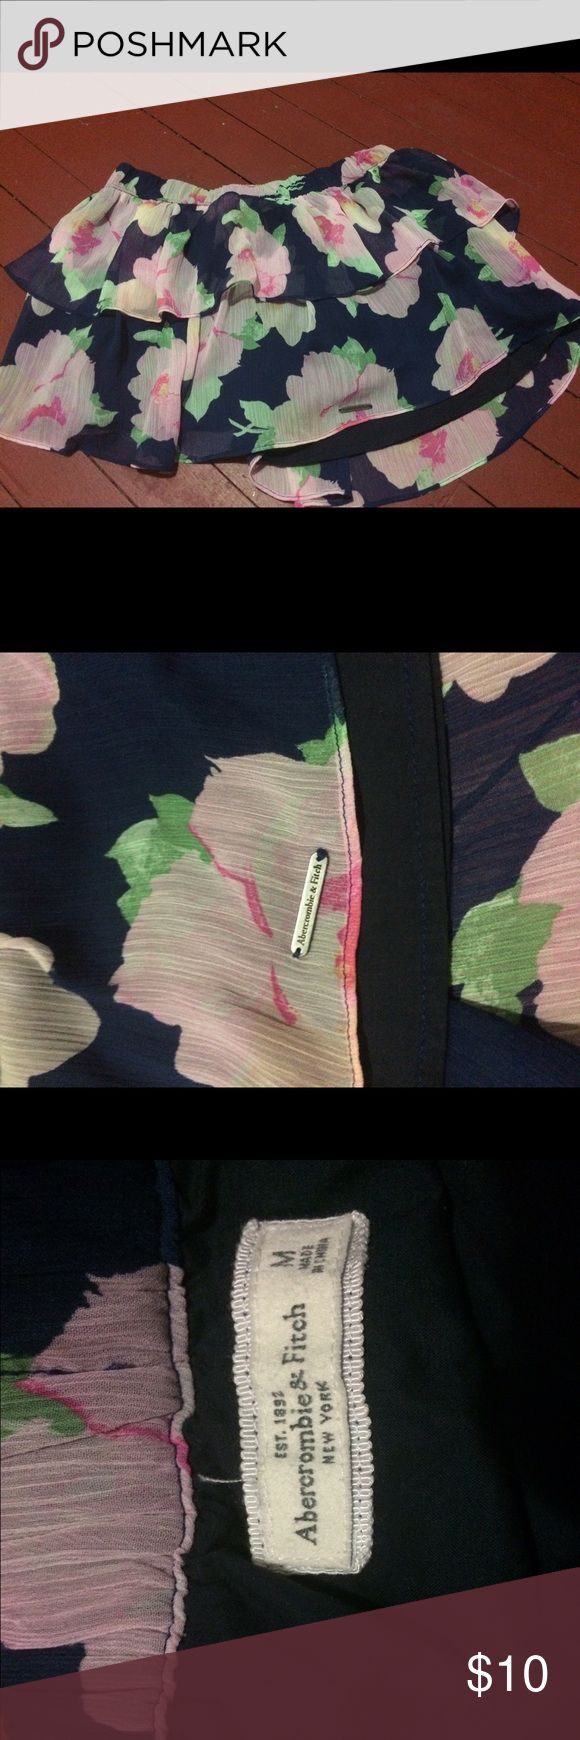 Abercrombie and Fitch Floral Skirt Size Medium Abercrombie & Fitch Skirt Size Medium execellent pre owned condition. Has a little logo on skirt hem. Abercrombie & Fitch Skirts